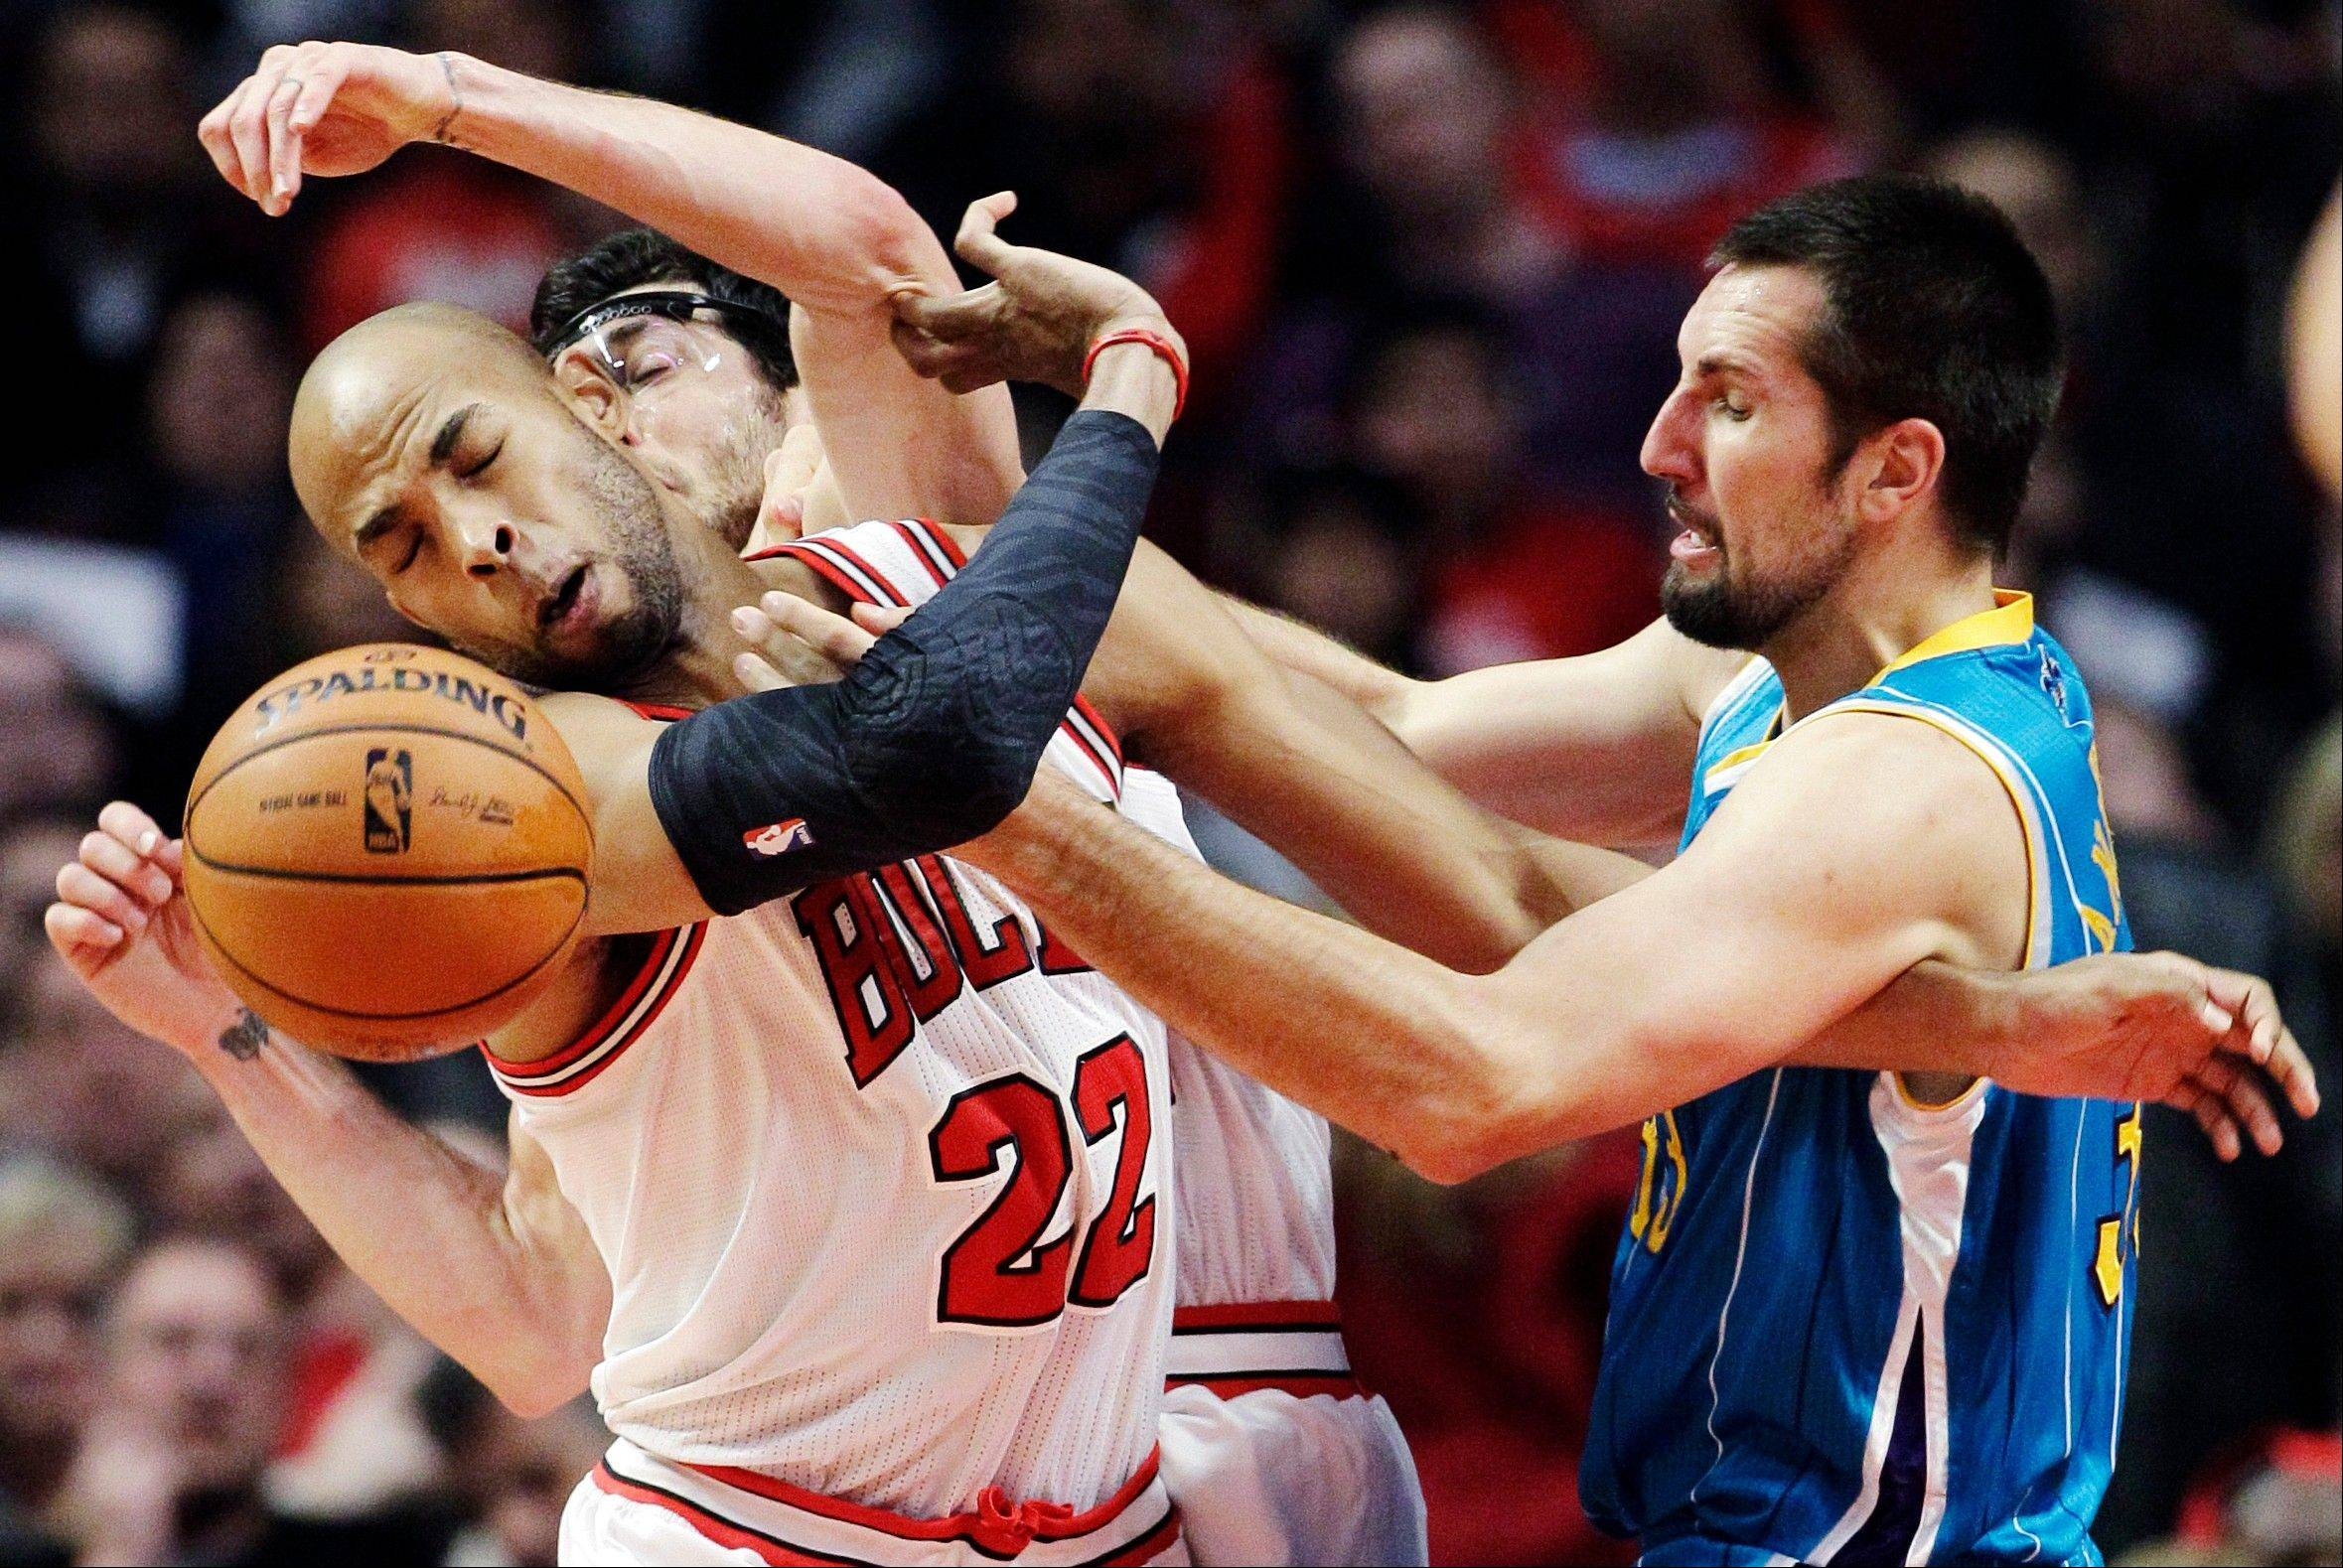 New Orleans Hornets forward Ryan Anderson, right, and Bulls forward Taj Gibson and guard Kirk Hinrich battle for a rebound Saturday during the first half at the United Center.